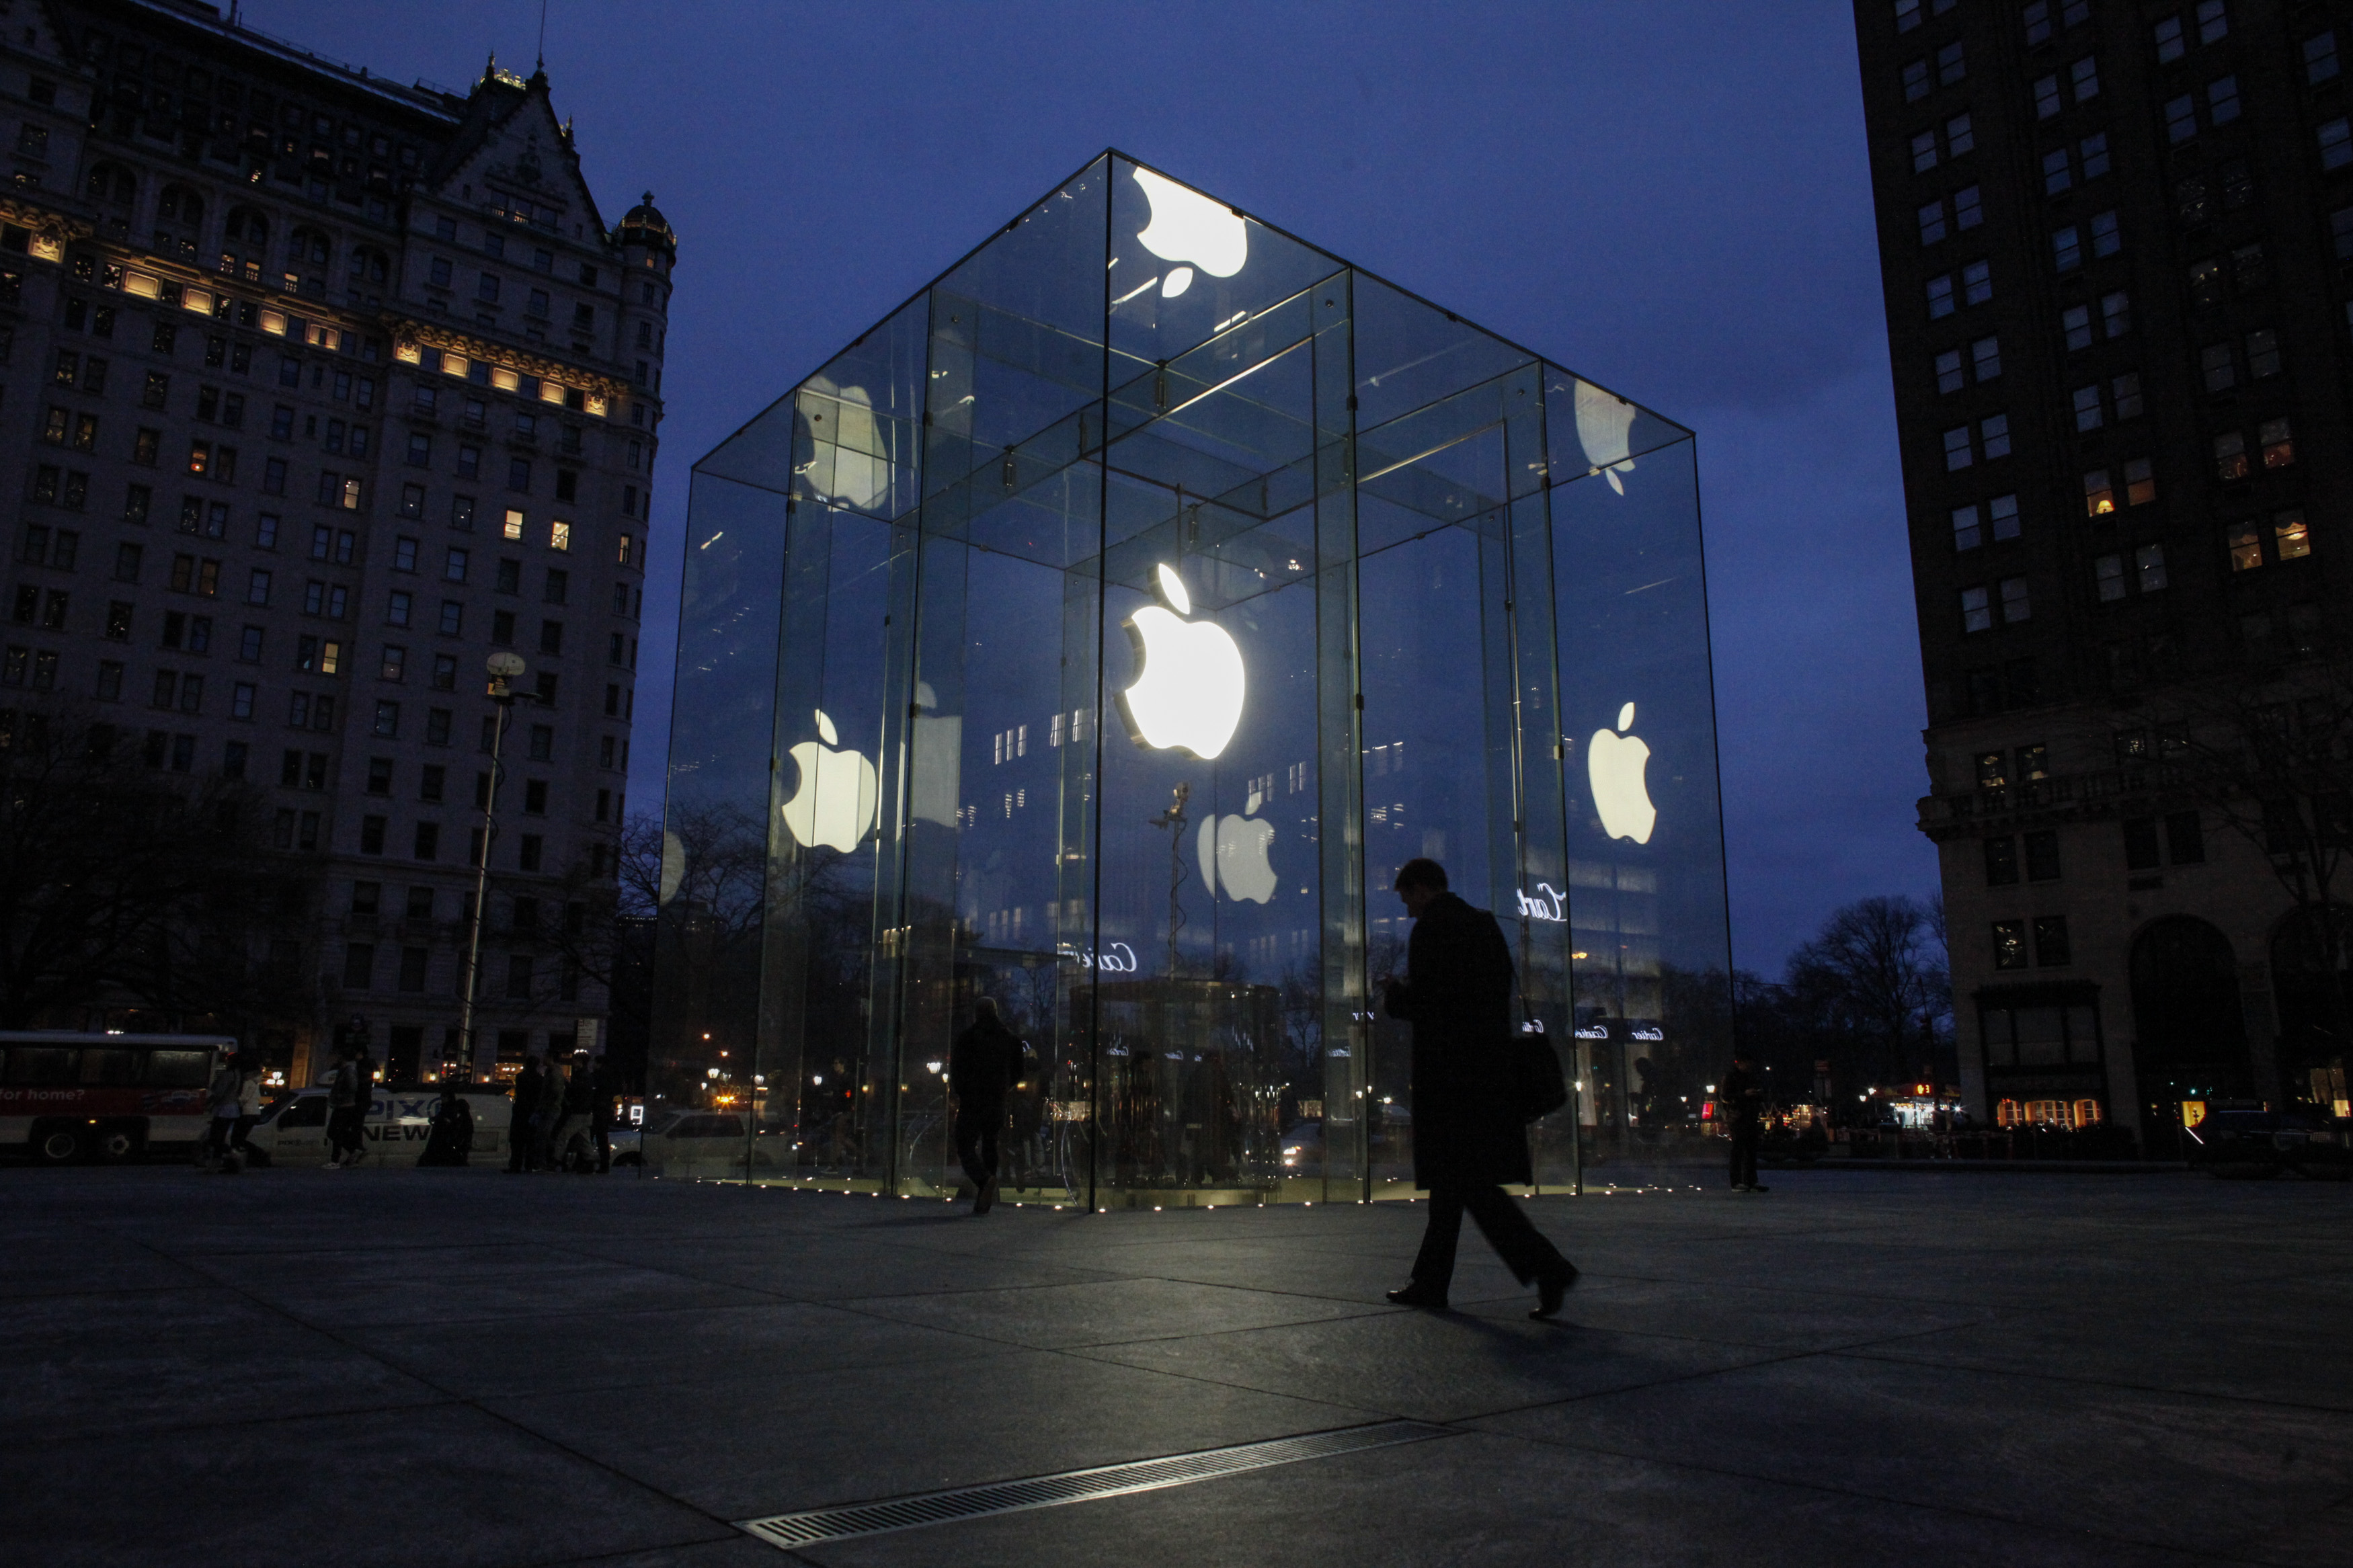 A man walks outside the Apple store on the Fifth Avenue in New York City on Feb. 17, 2016